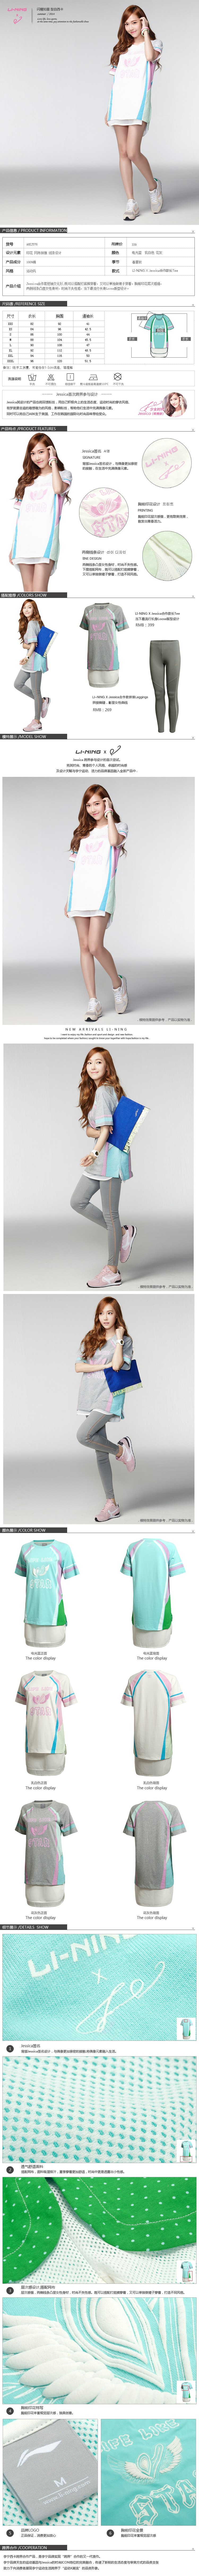 [140704] Jessica (SNSD) New Picture for Li-Ning Sport CF [12]